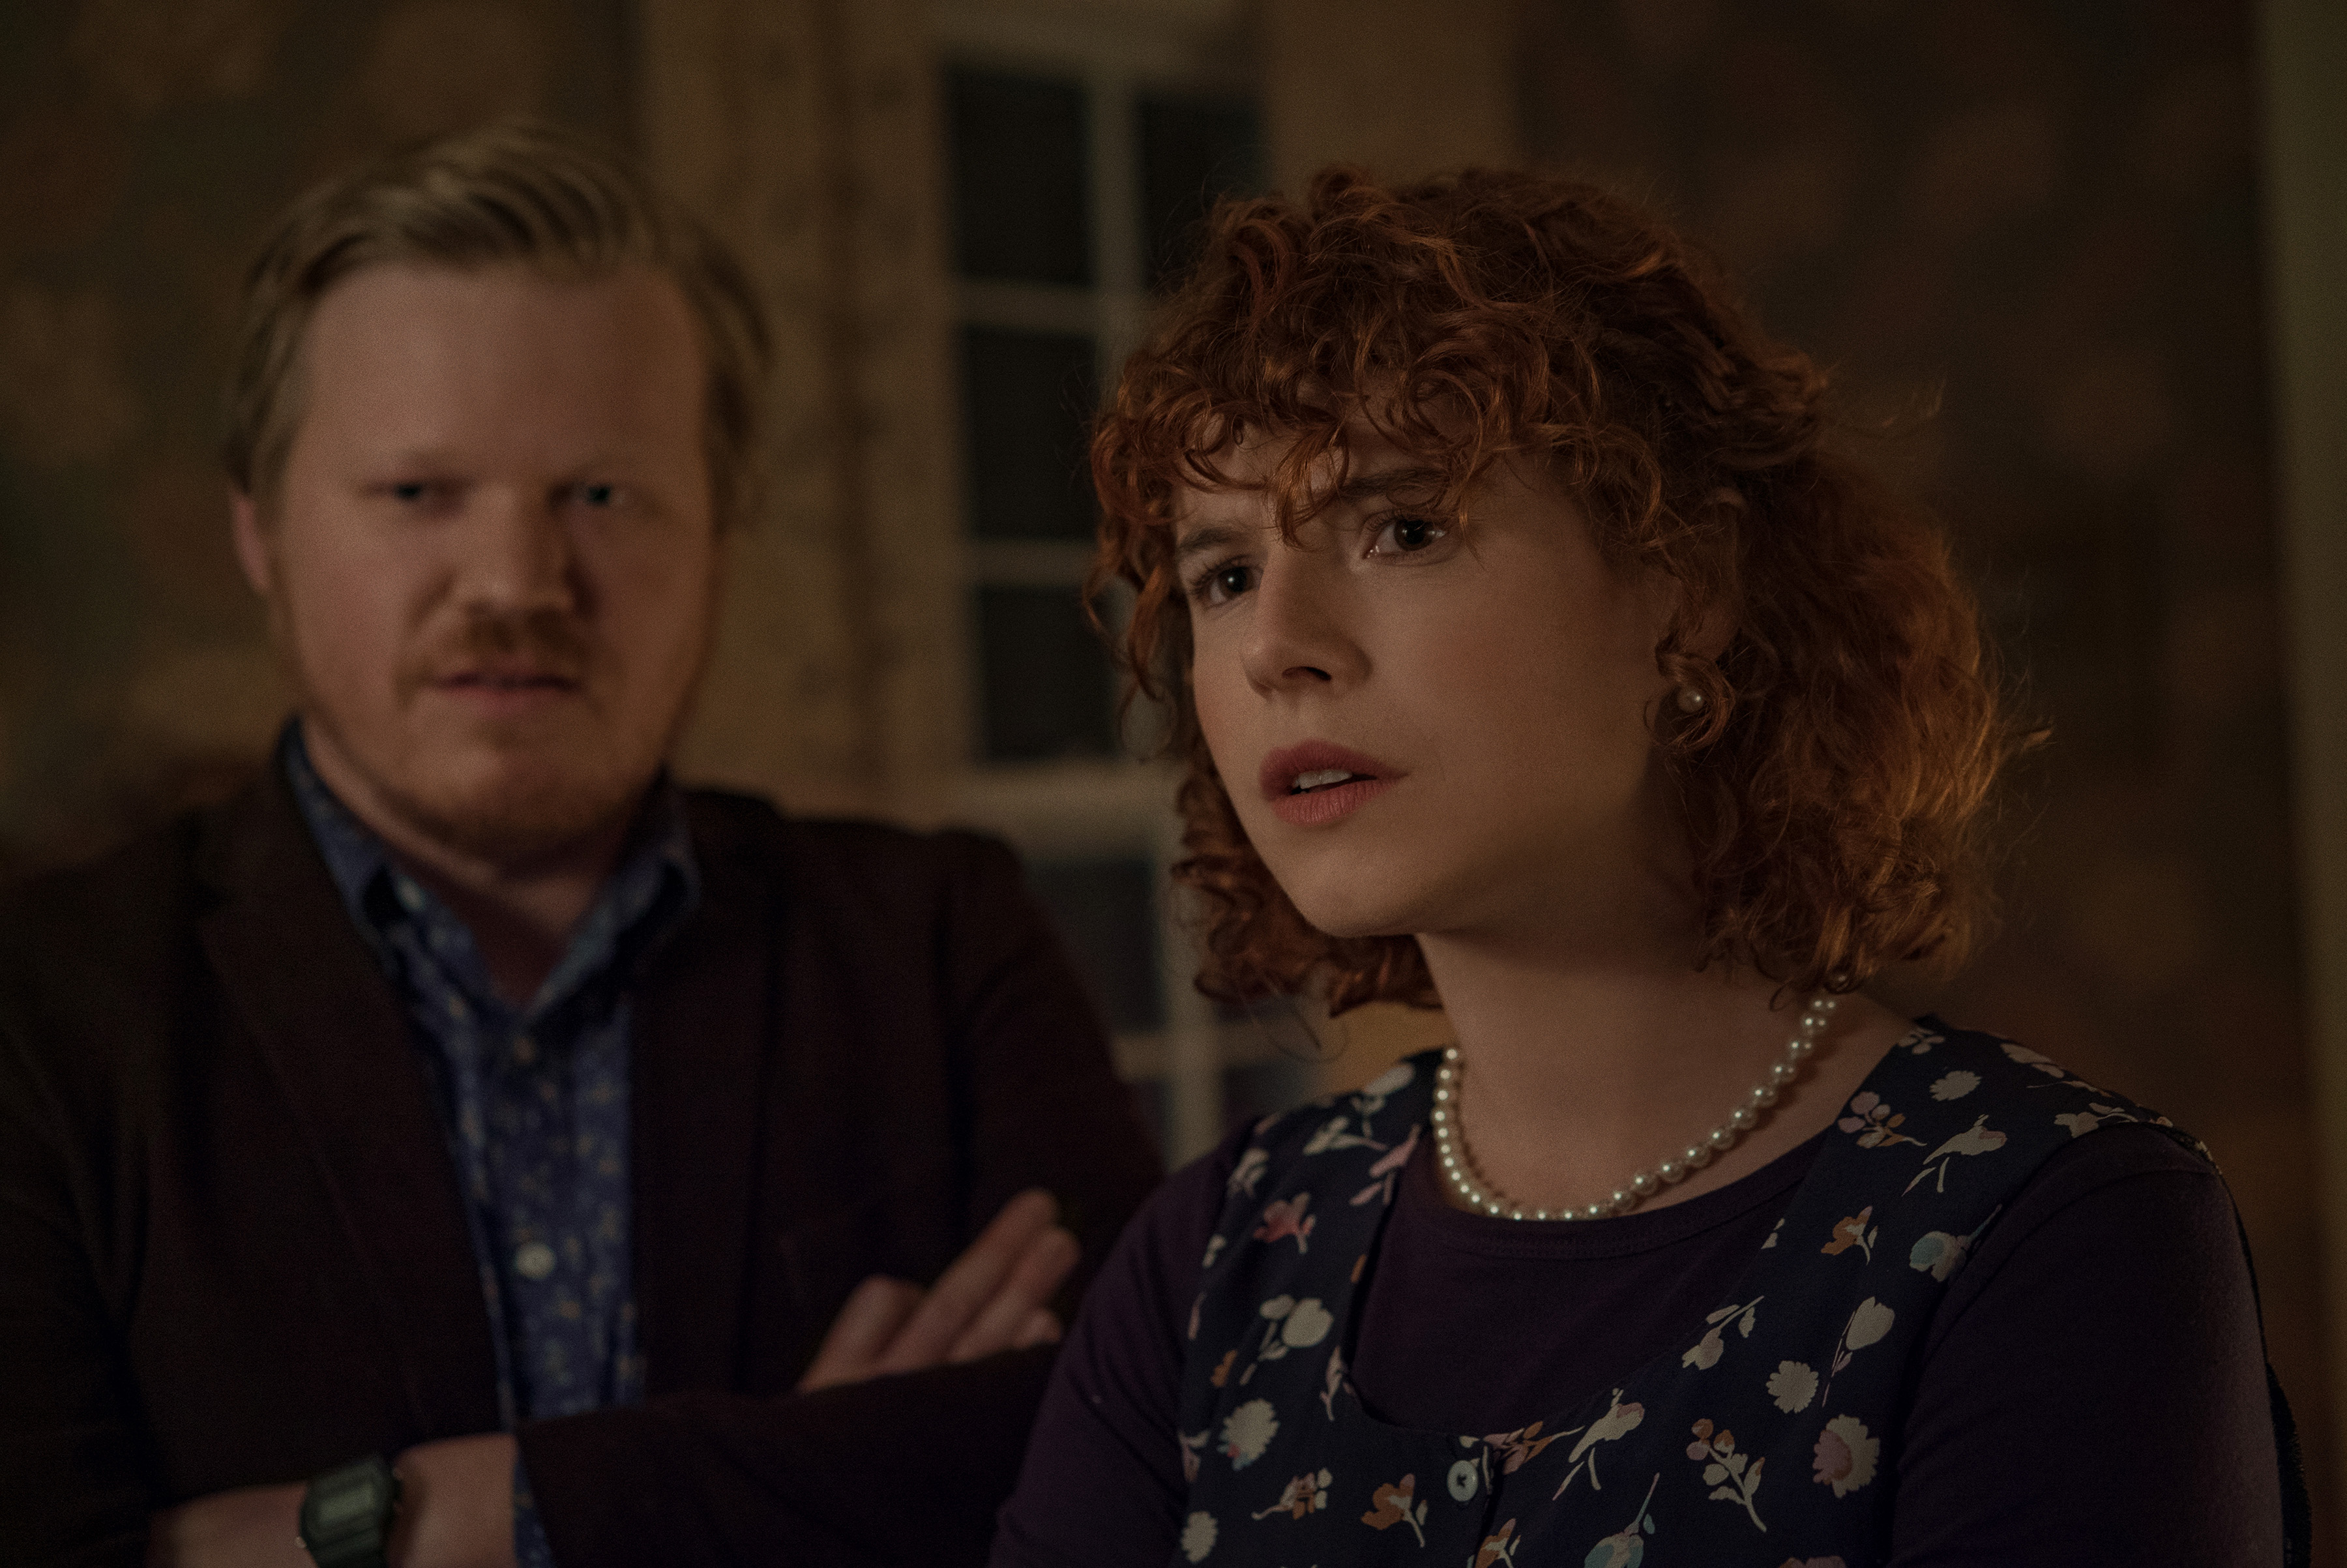 Jesse Plemons and Jessie Buckley in I'm Thinking of Ending Things (2020)